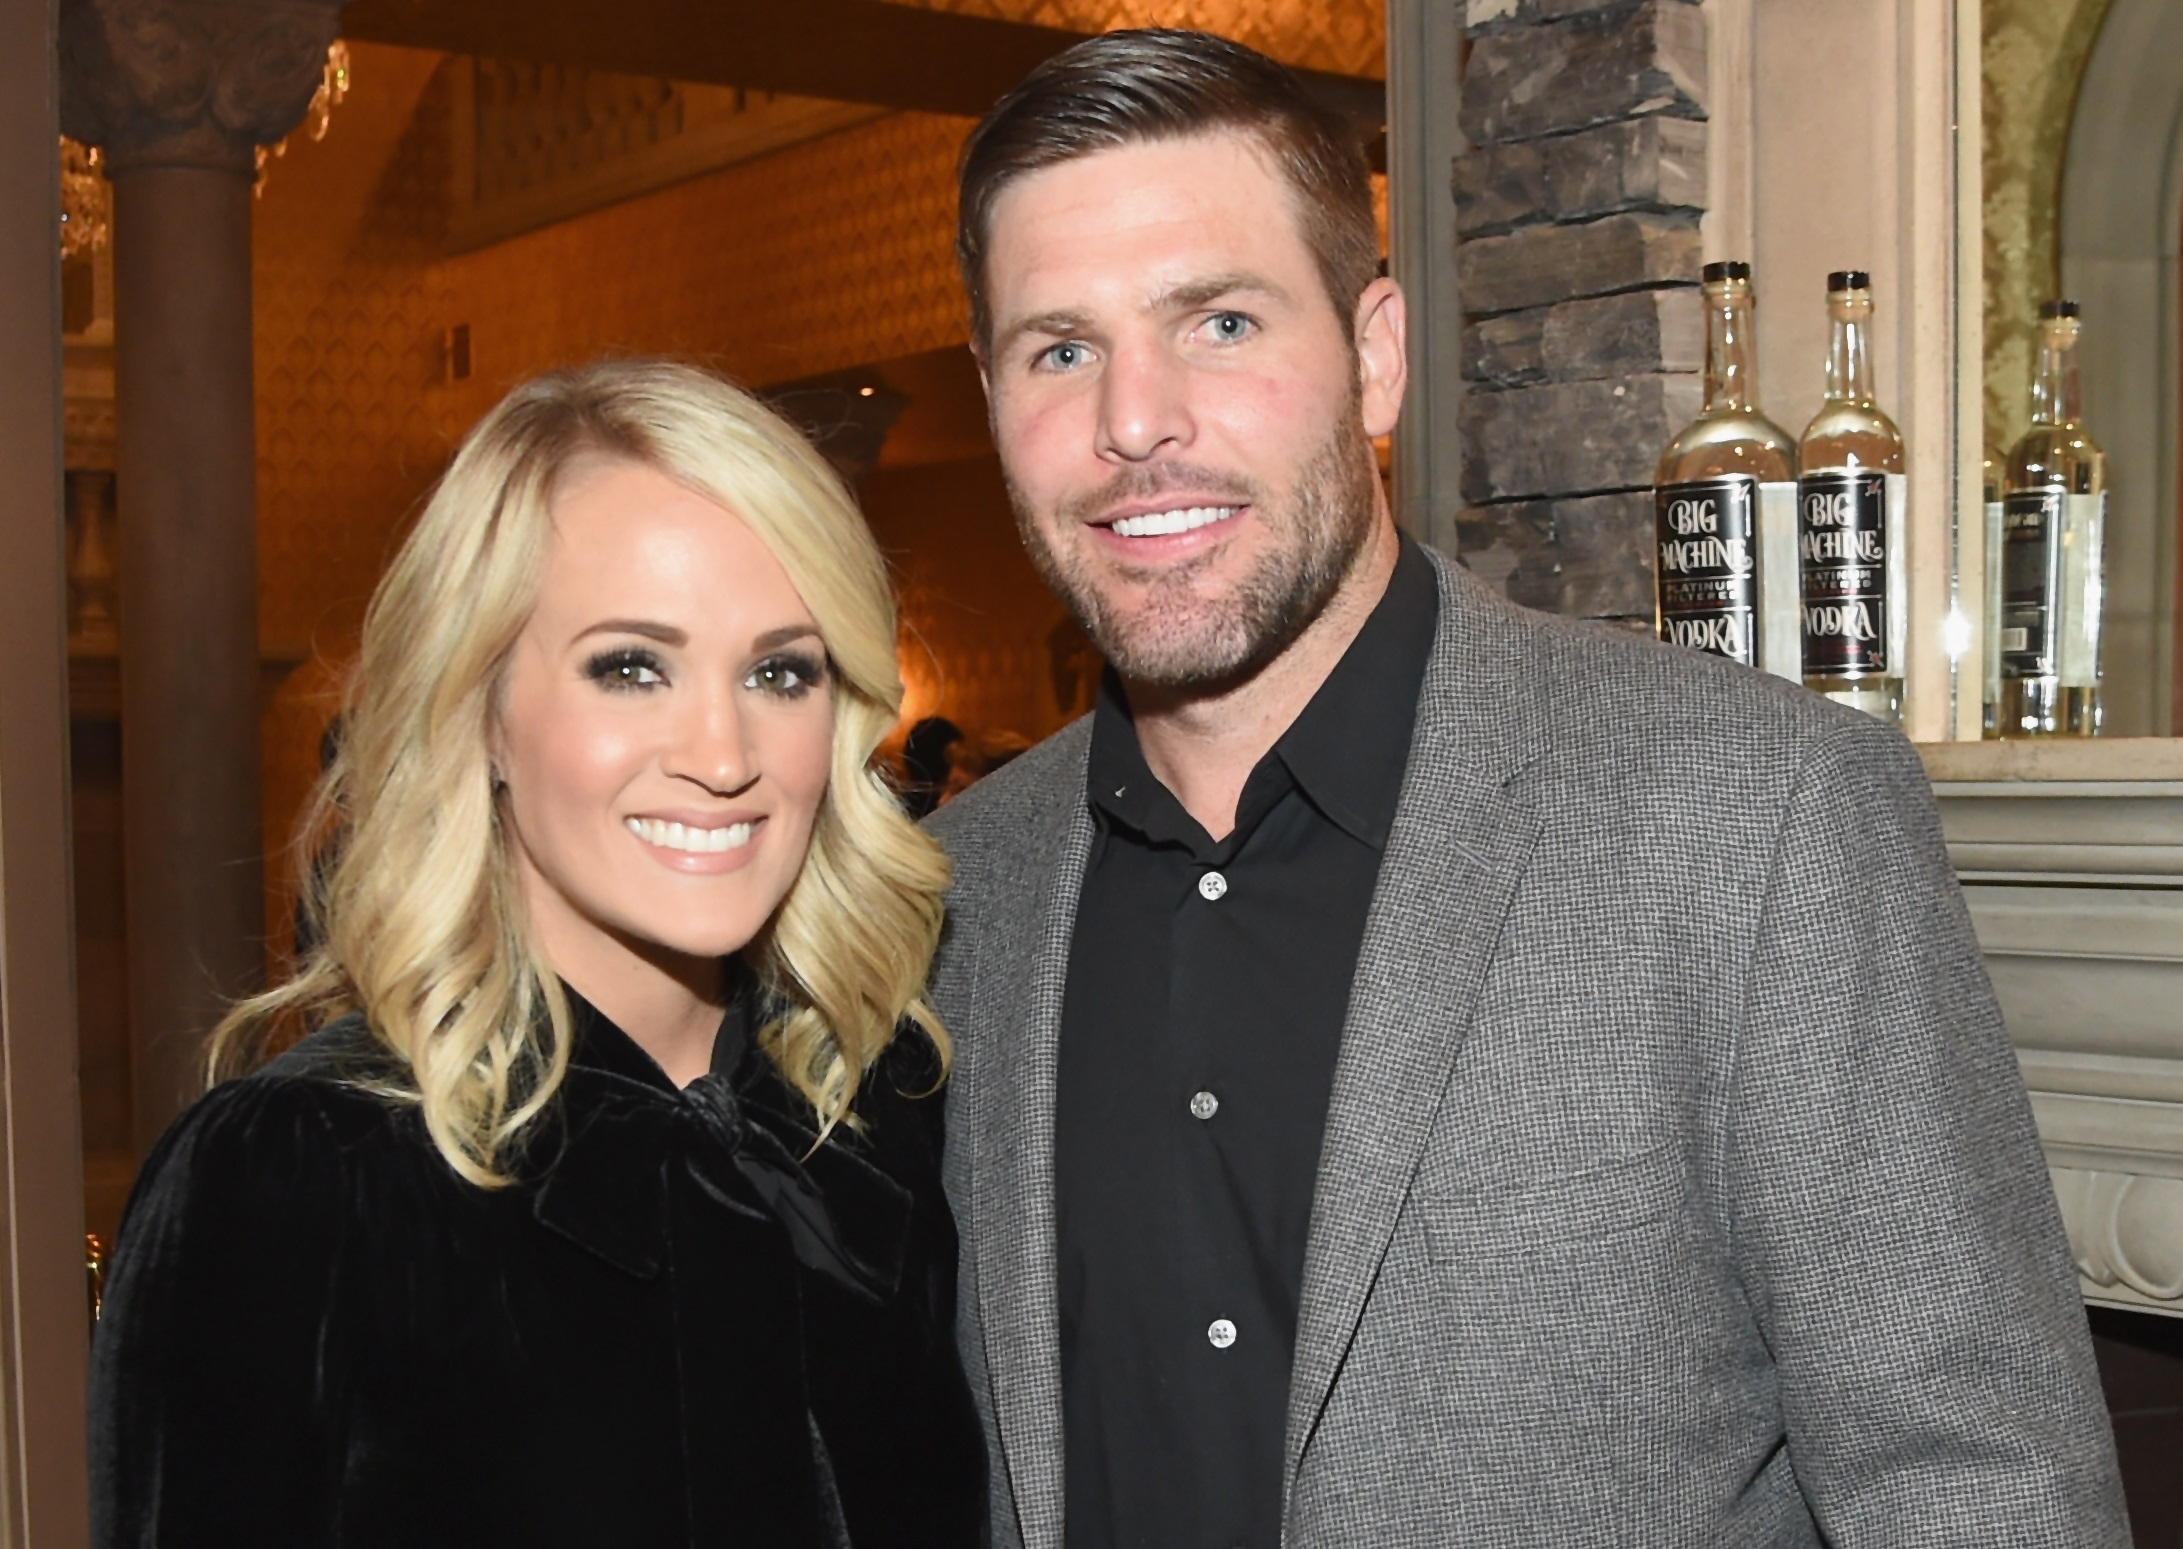 Carrie Underwood reveals husband Mike Fisher tracked her